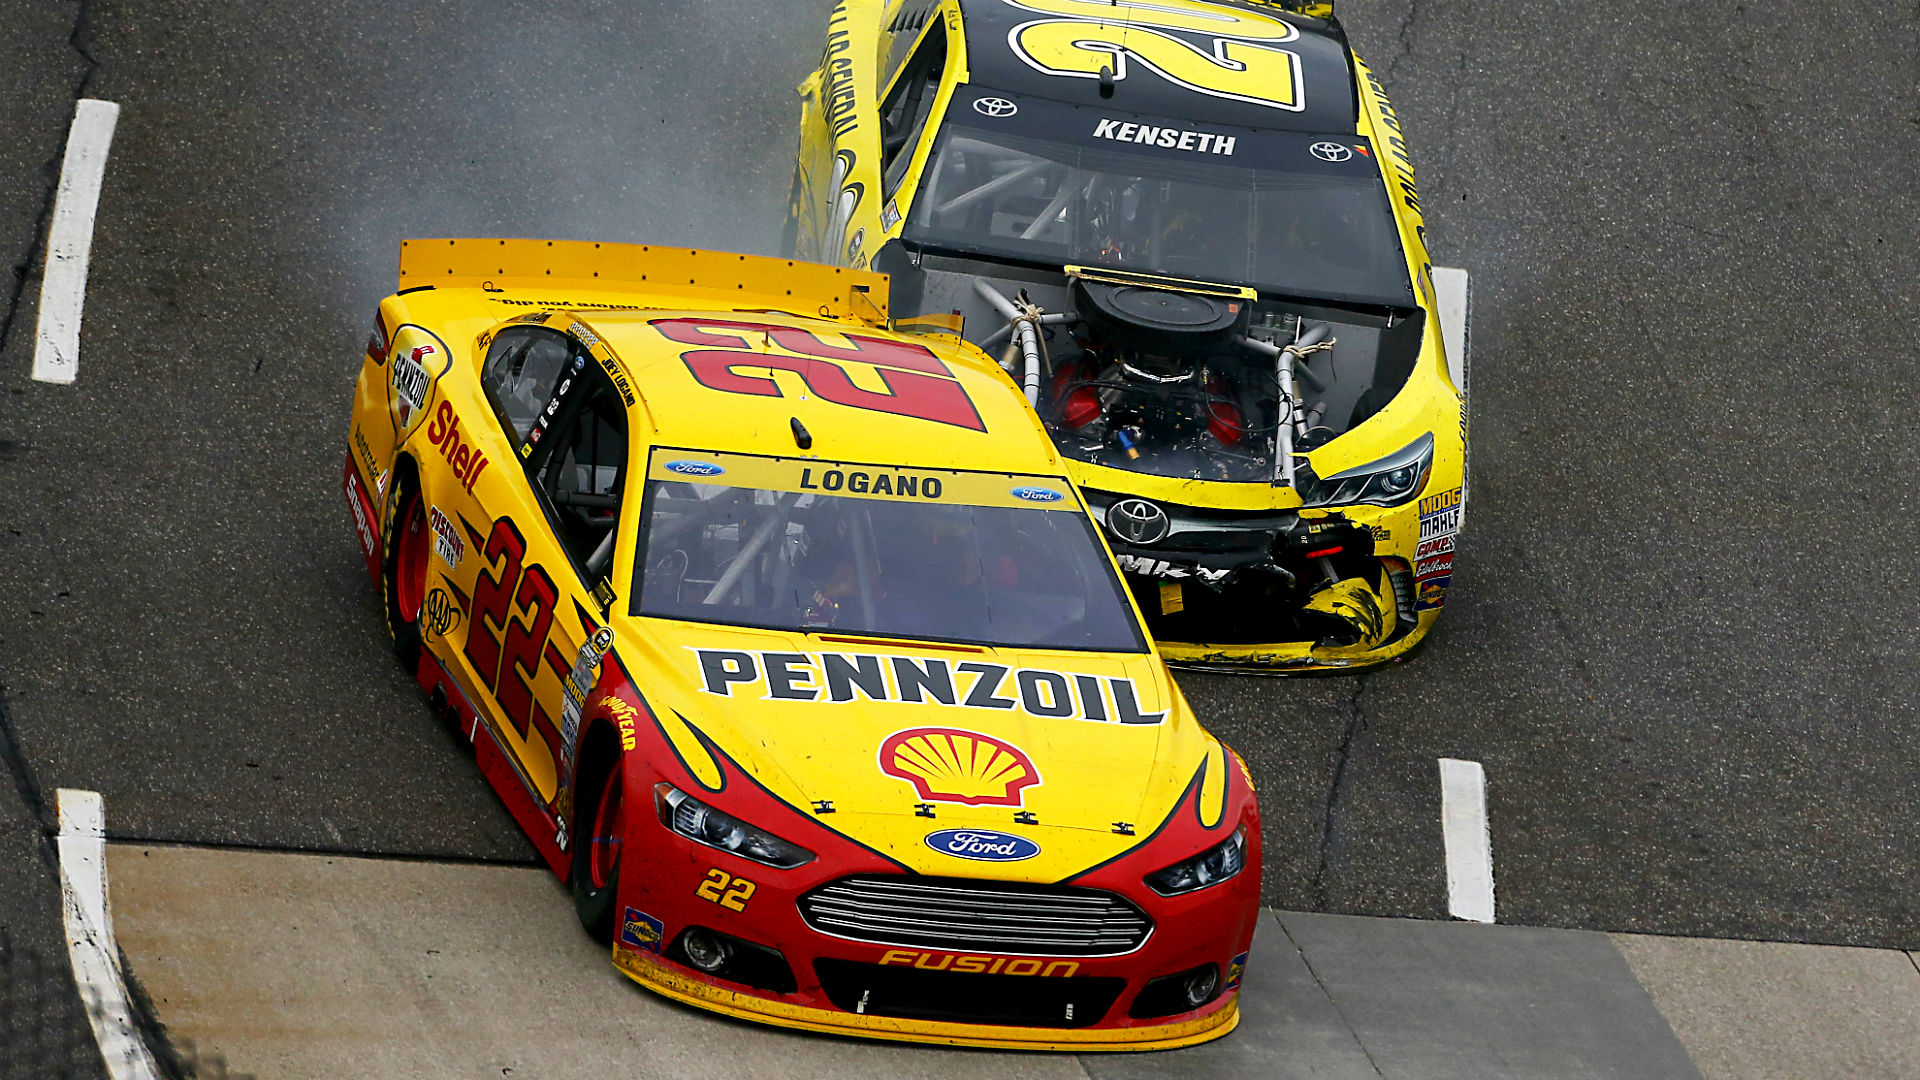 NASCAR And The Art Of Revenge: Psychology Behind Getting Even